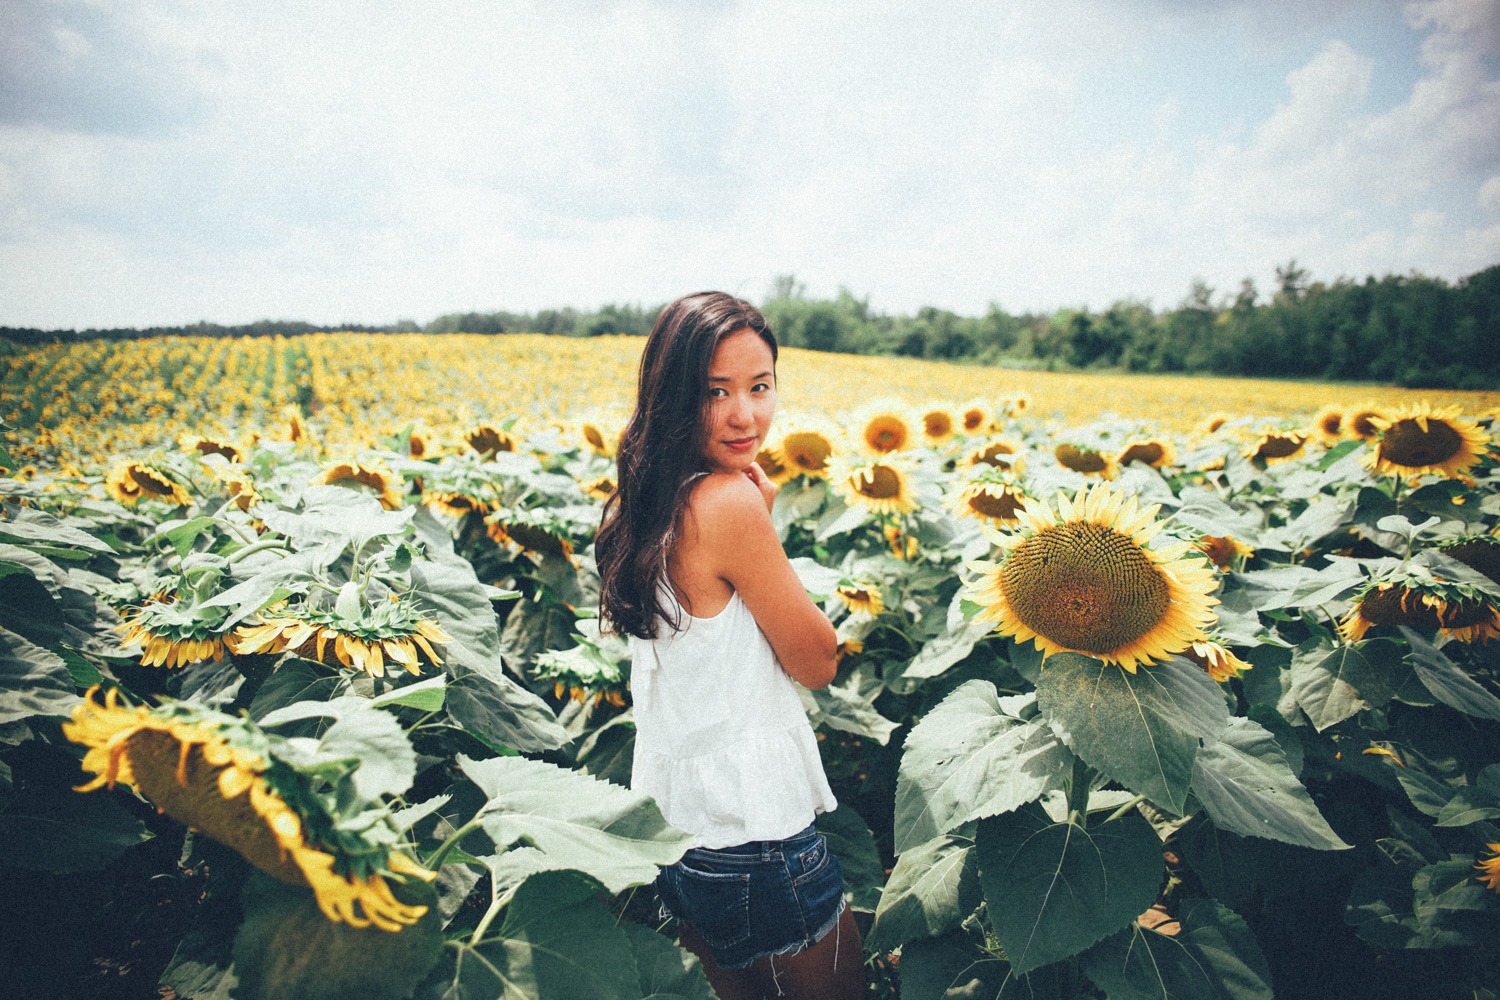 Summer 2018, not the sunflower farm that got closed down. Photo: Robbie Lòpez